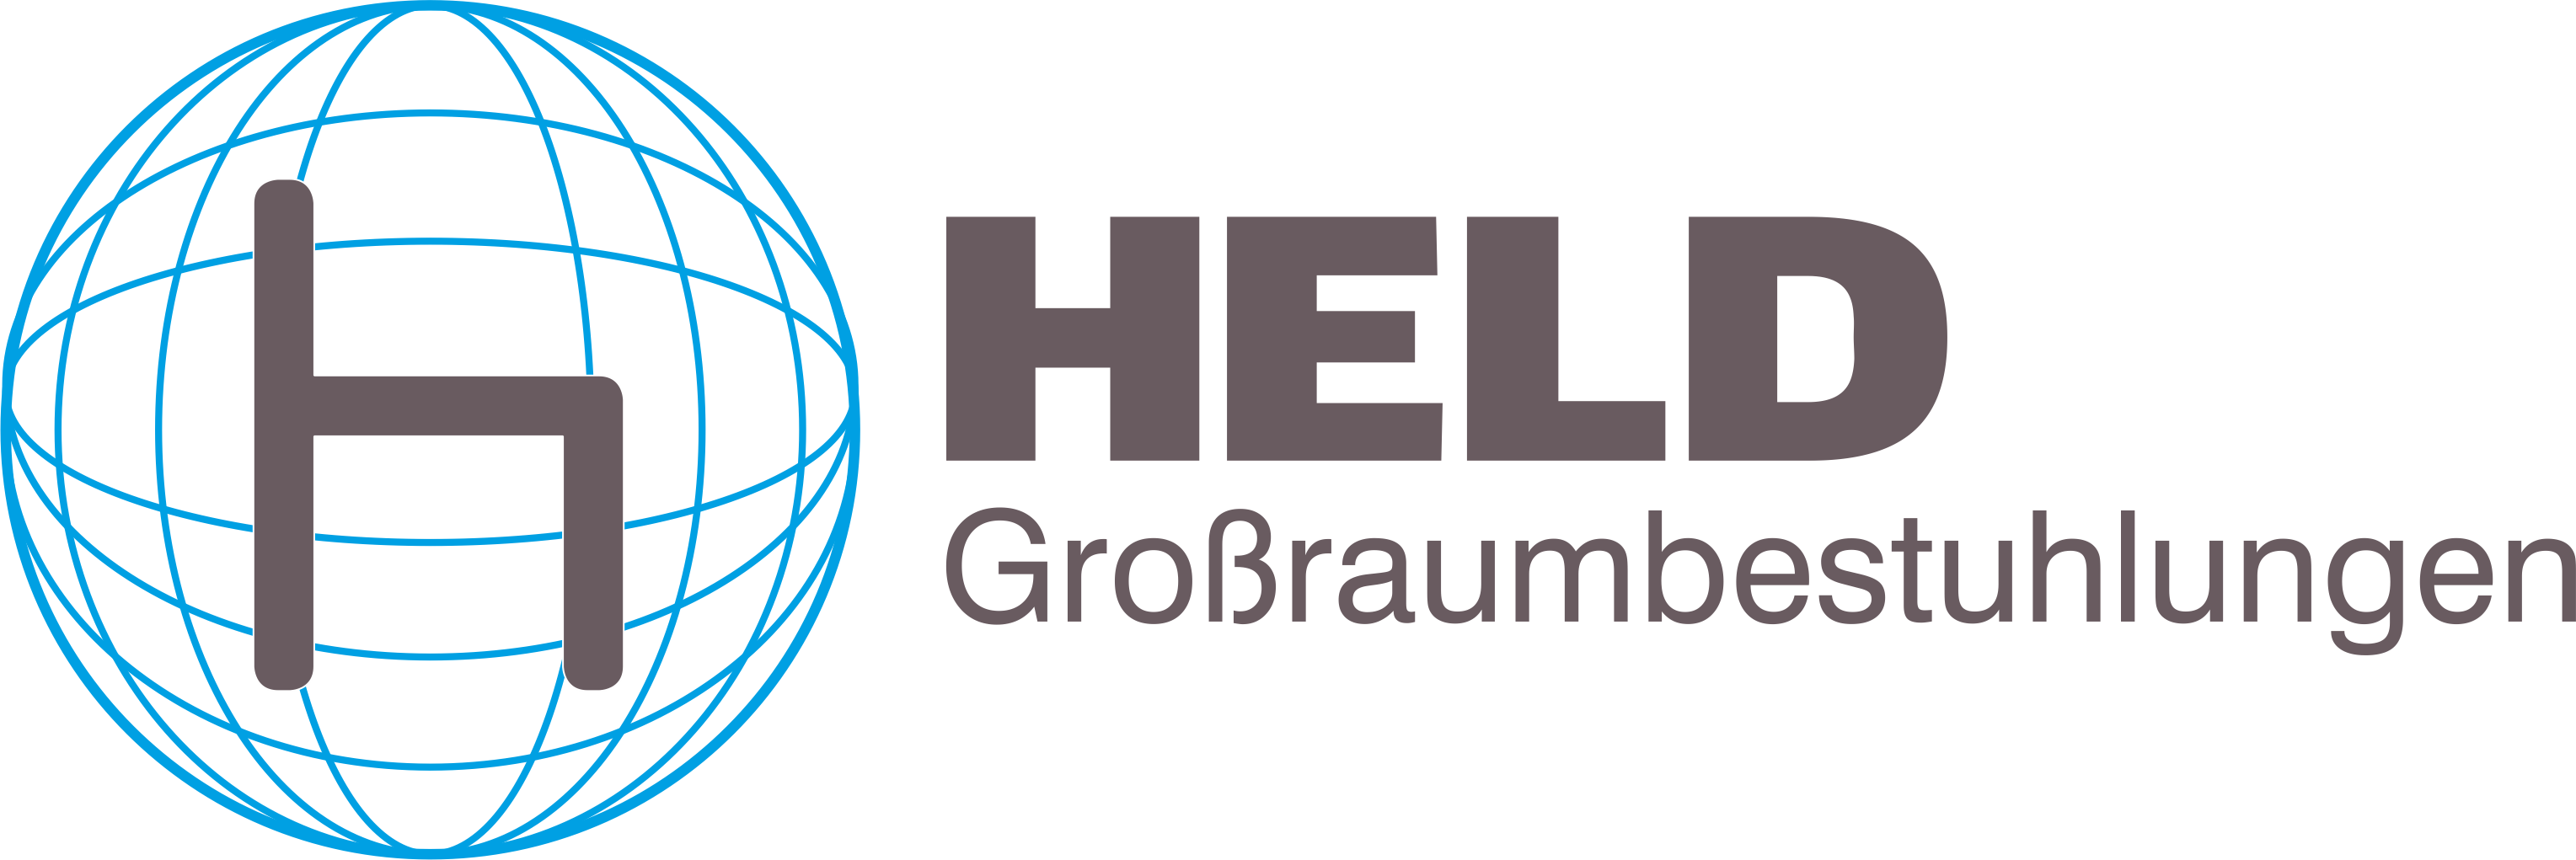 Logo-Footer-Held-Grossraumbestuhlungen-Bernried